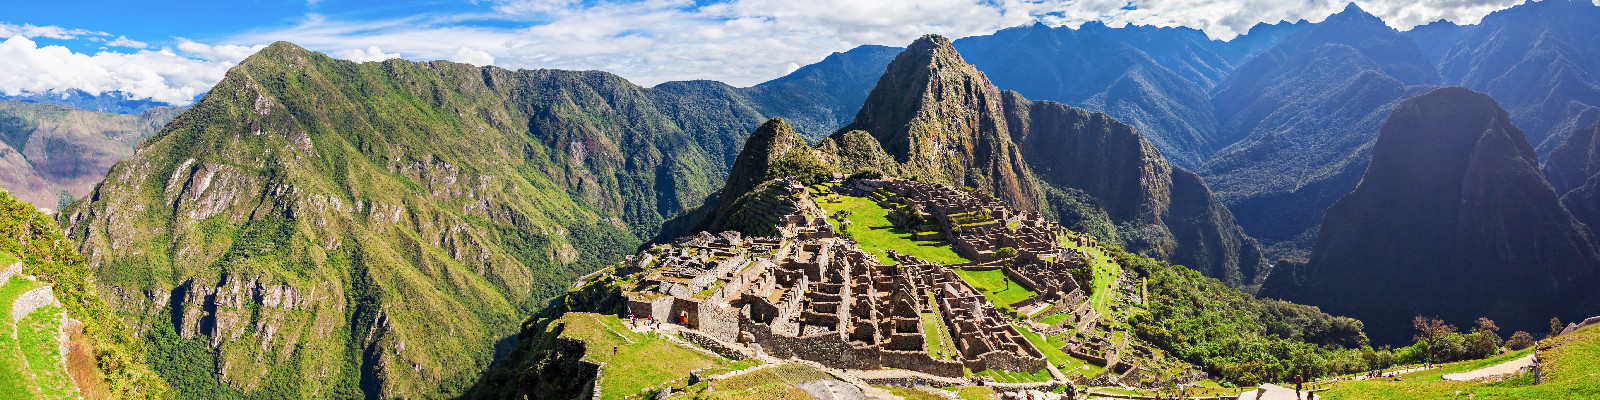 Peru and Macchu Piccchu Tours (photo by Pedro Szekely)